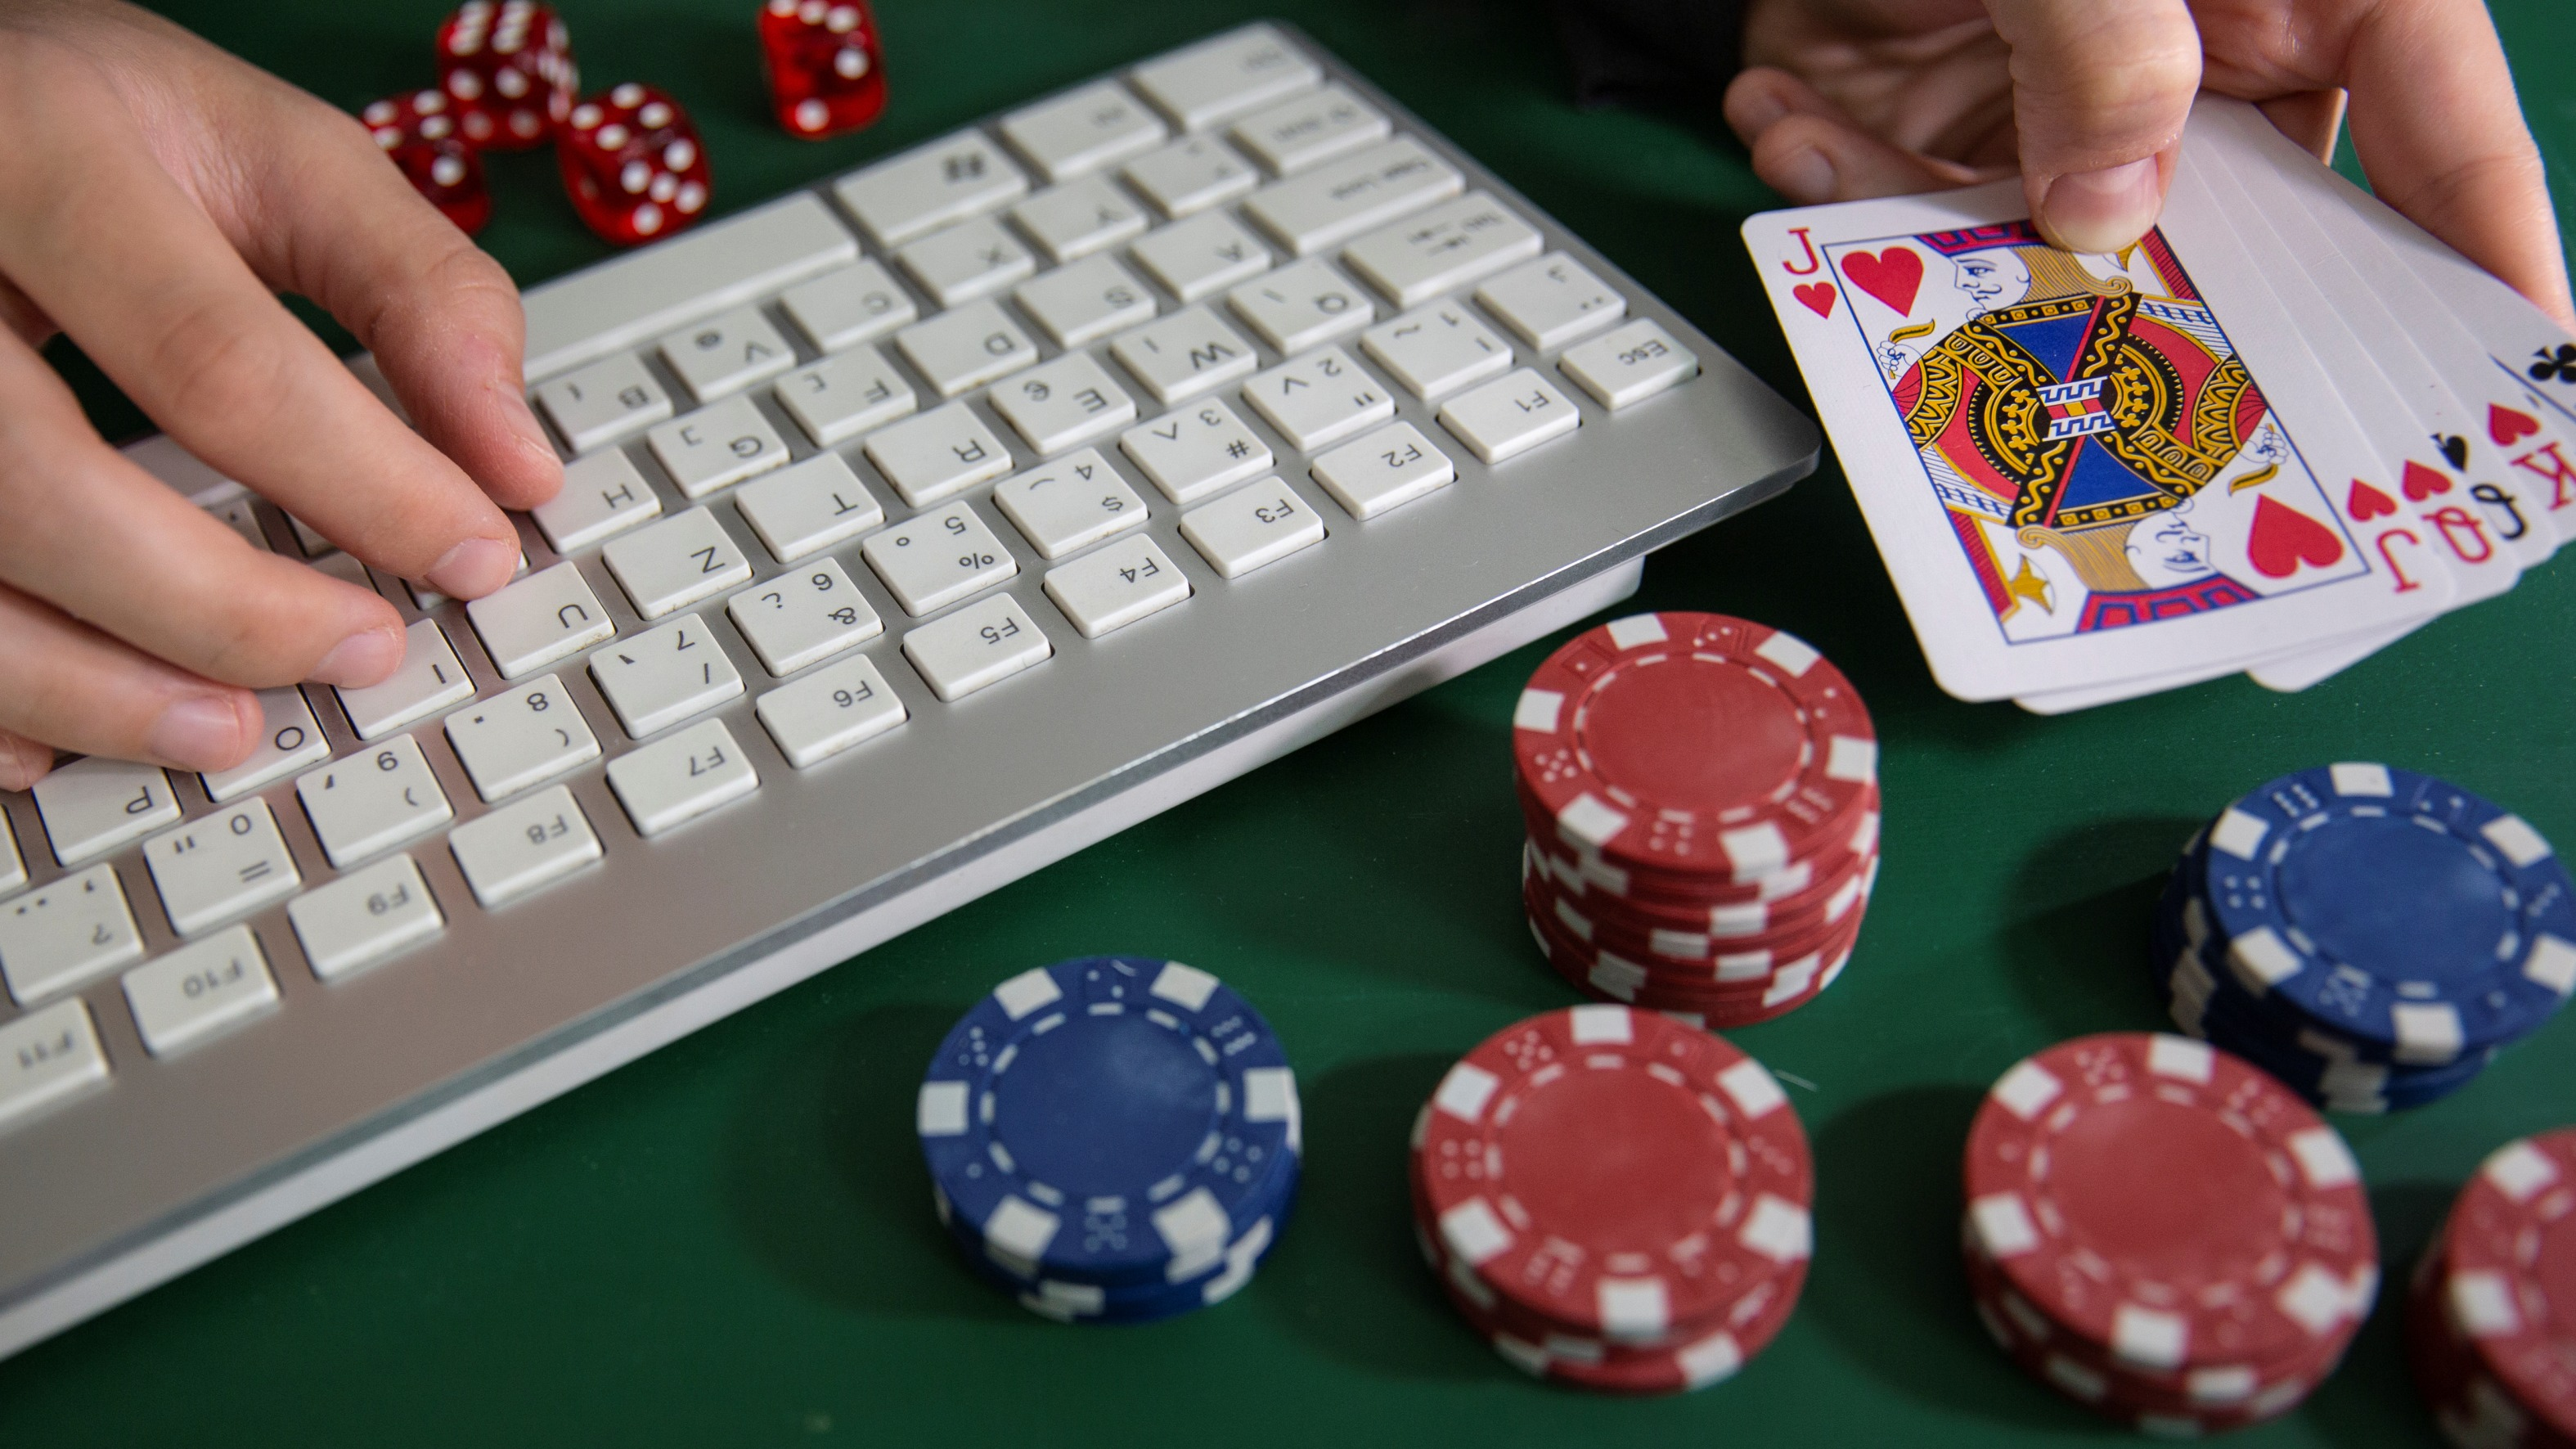 How China's e-commerce giants enable illegal online gambling - Nikkei Asia